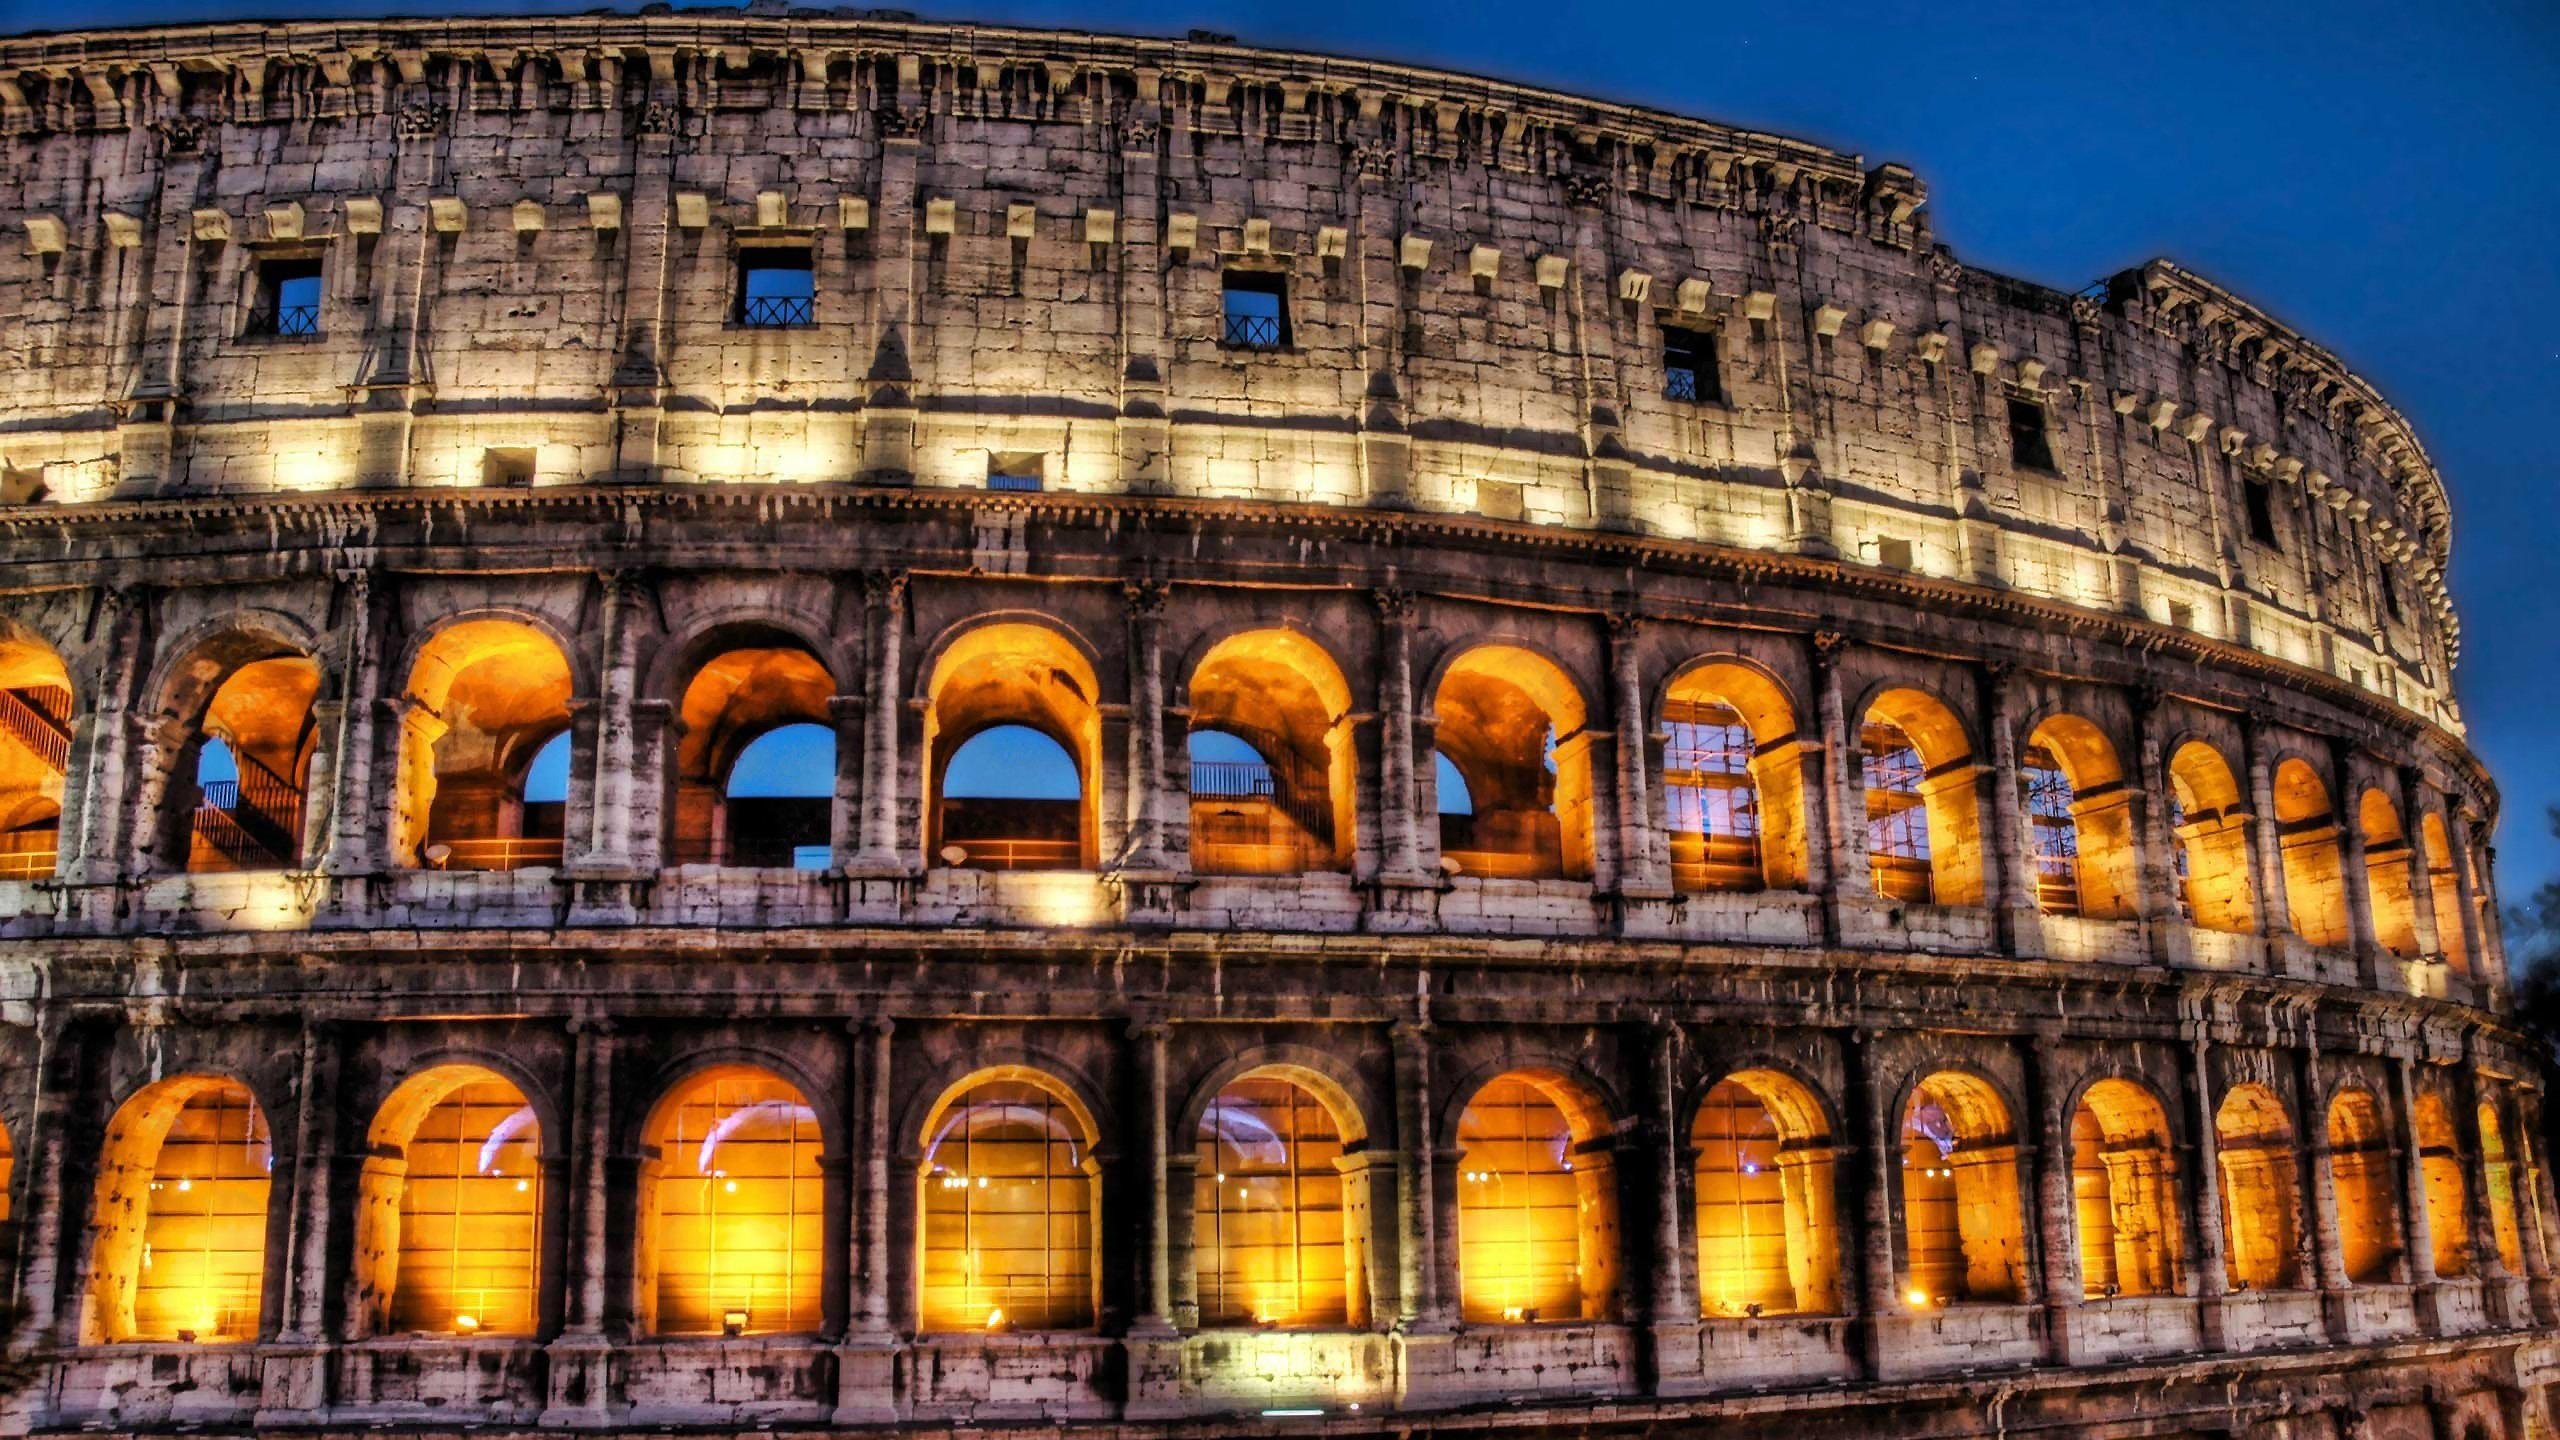 night architecture buildings Colosseum HD Wallpaper